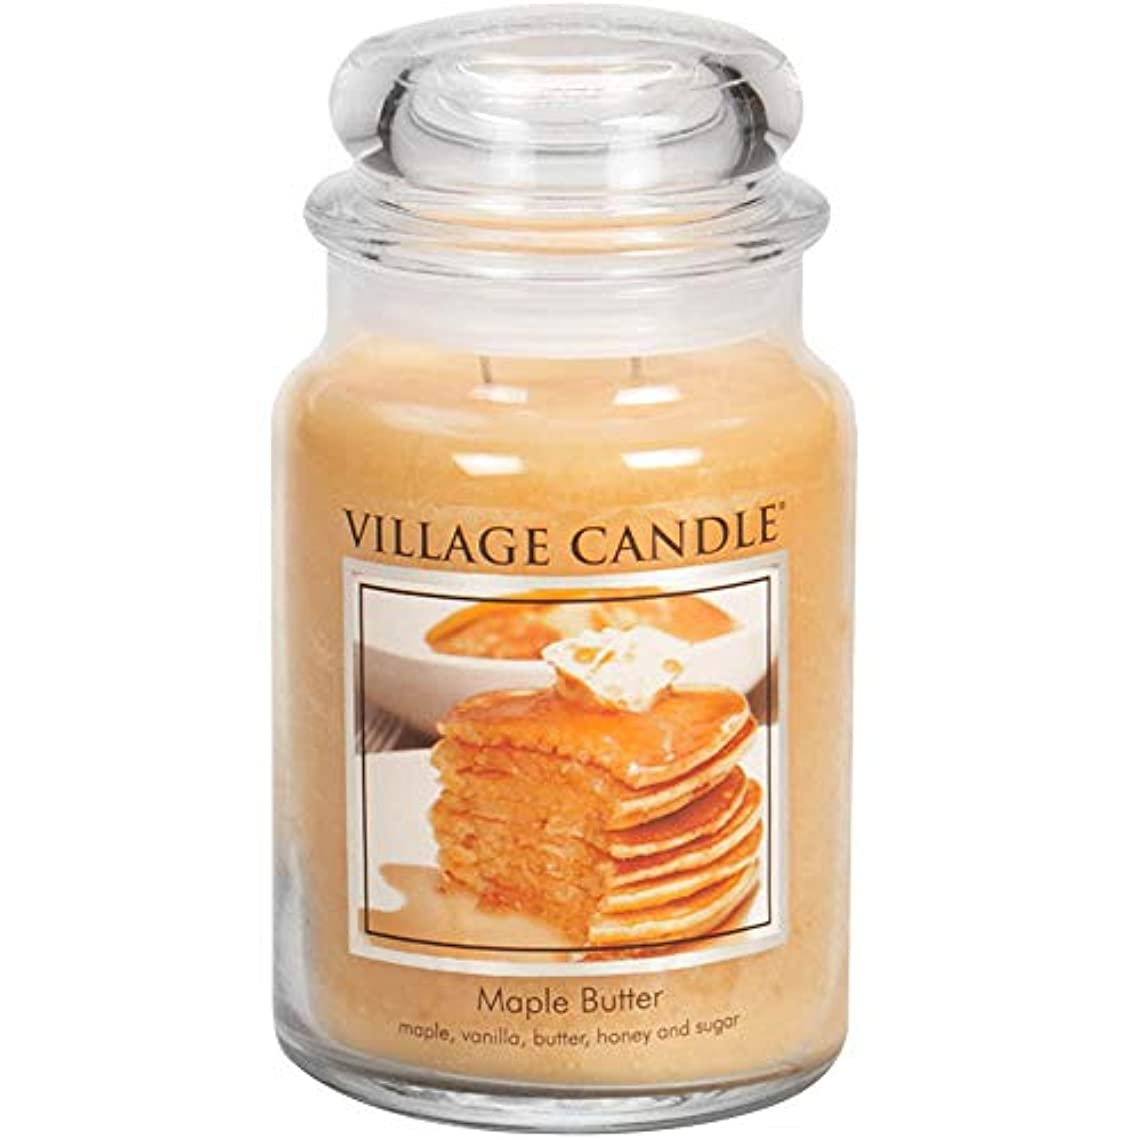 ドライ産地パターンVillage Candle Large Fragranced Candle Jar - 17cm x 10cm - 26oz (1219g)- Maple Butter - upto 170 hours burn time...